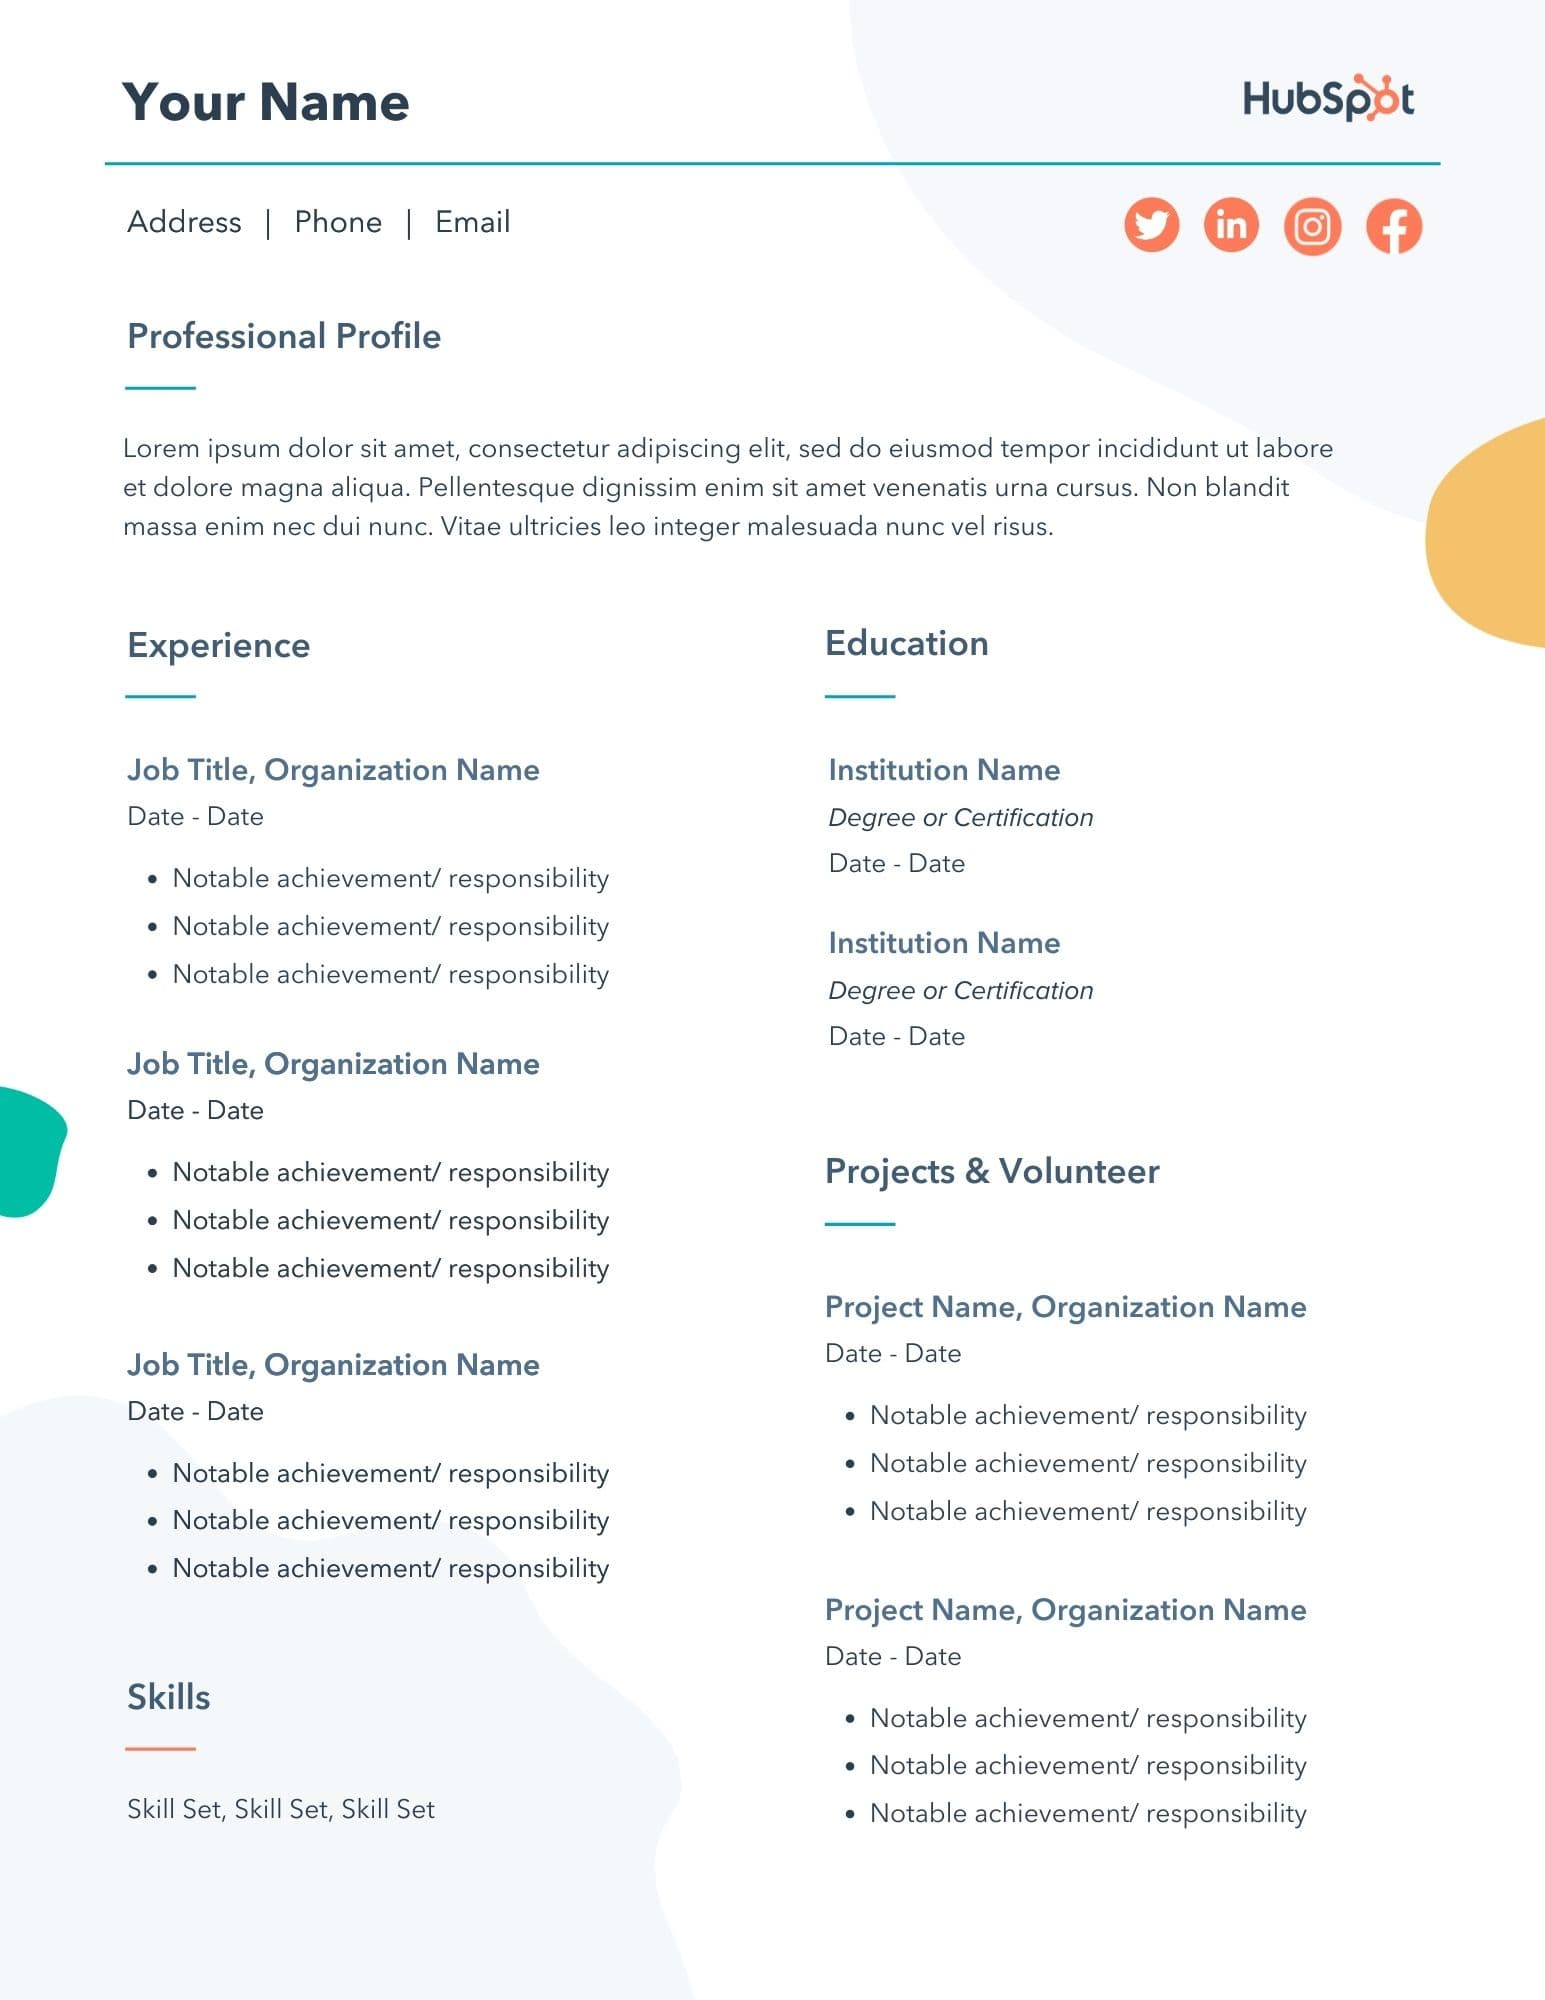 free resume templates for microsoft word to make your own office template anita borg Resume Microsoft Office Resume Templates